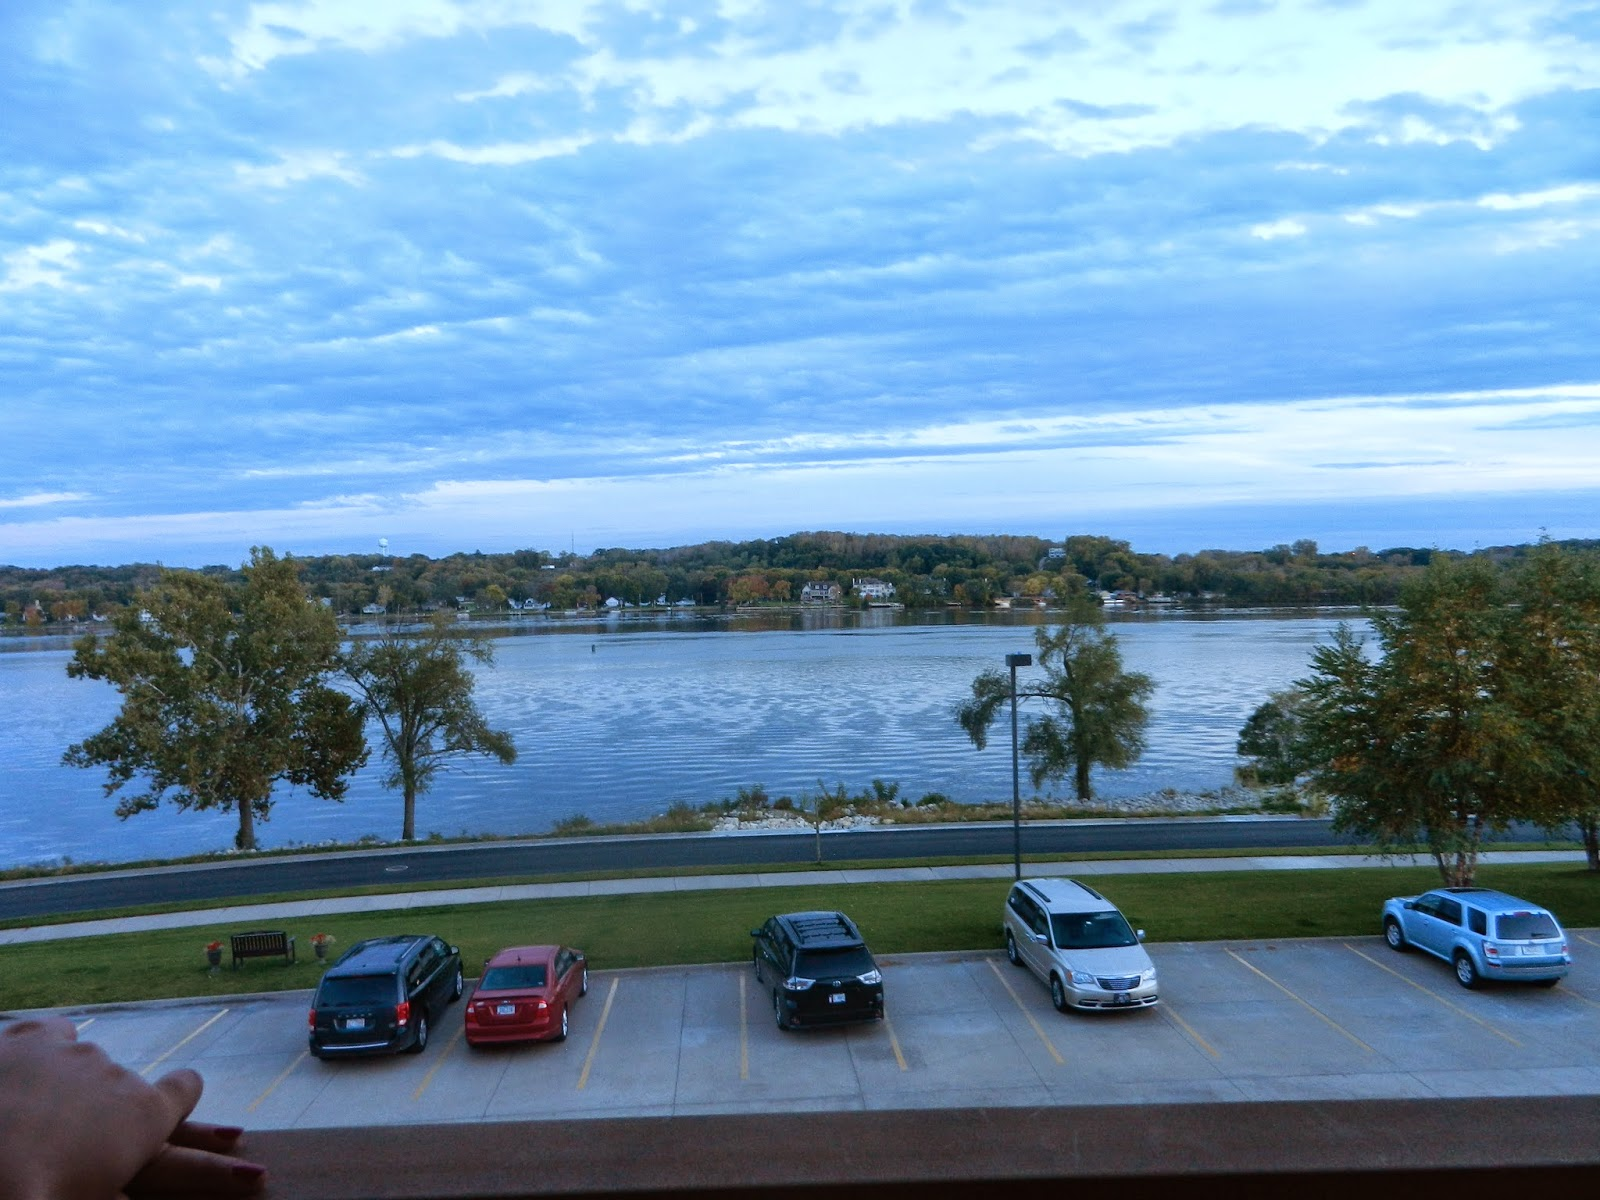 hotel river view leclaire illinois